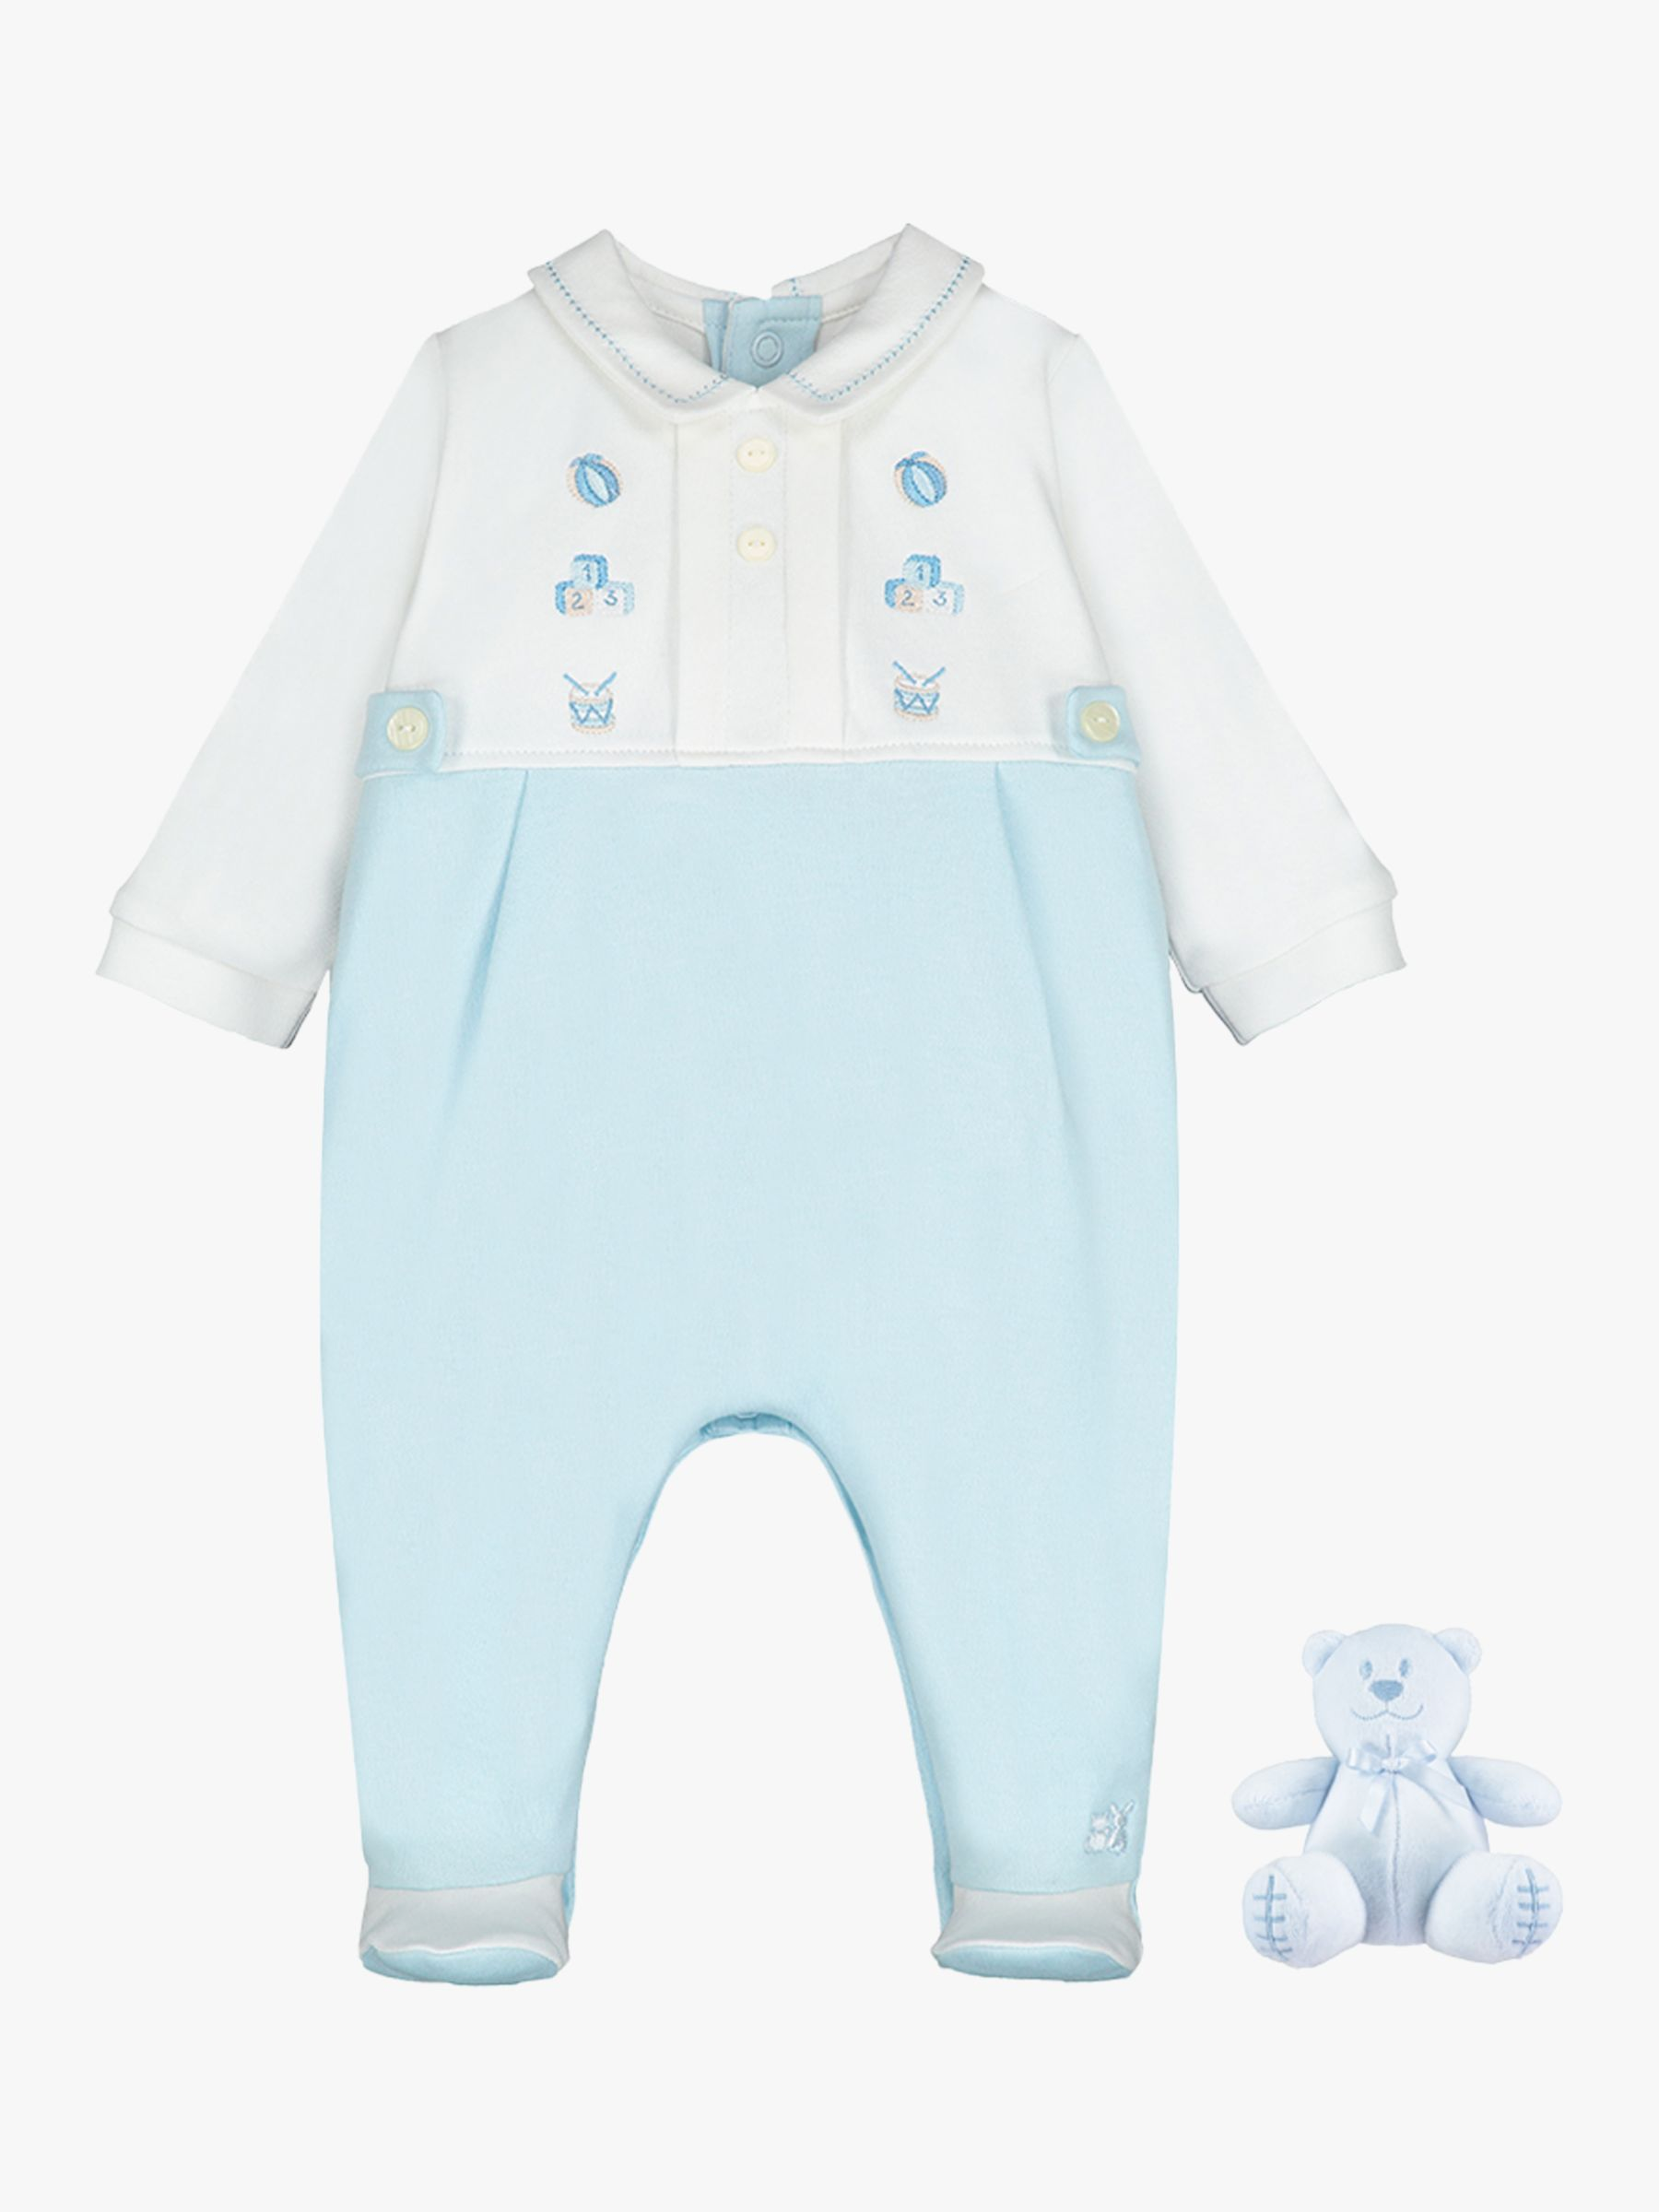 Emile et Rose Emile et Rose Sonny Sleepsuit and Teddy Bear Set, Pale Blue/White